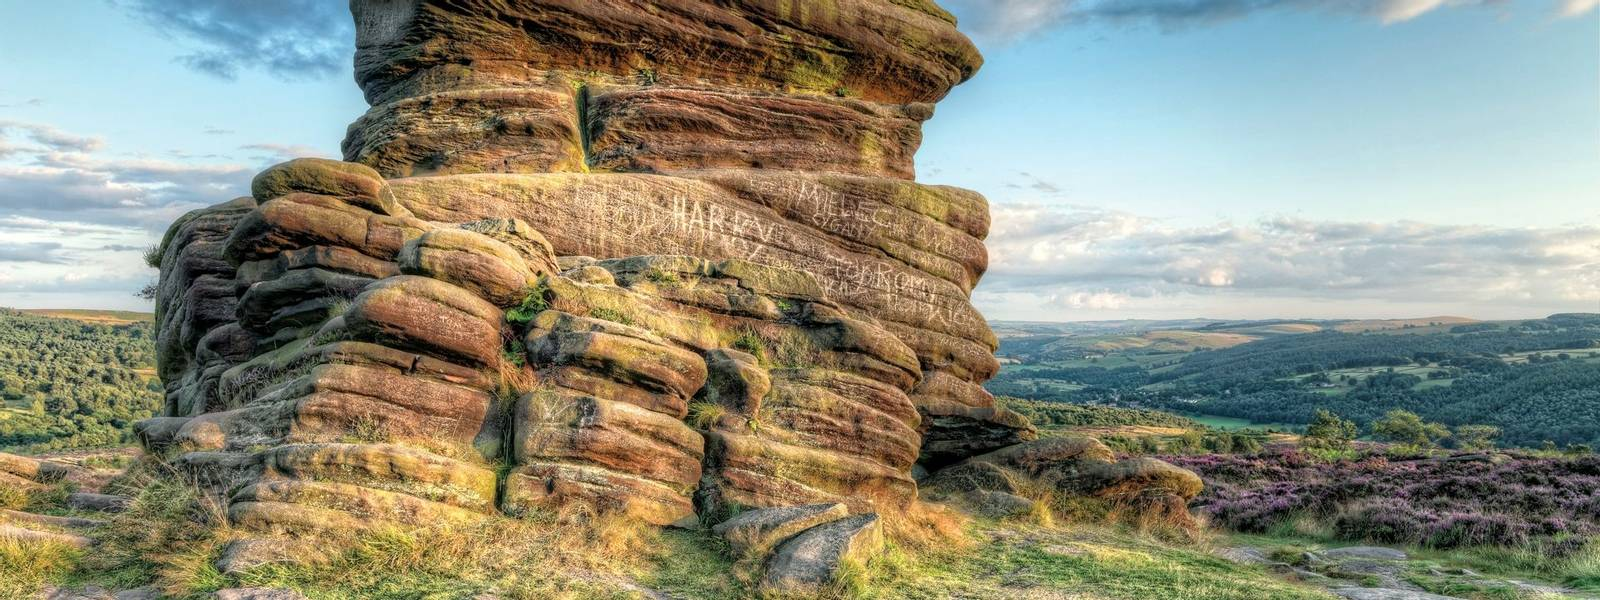 Peak District - Mother Cap Rock - Goeology -AdobeStock_69706566.jpeg